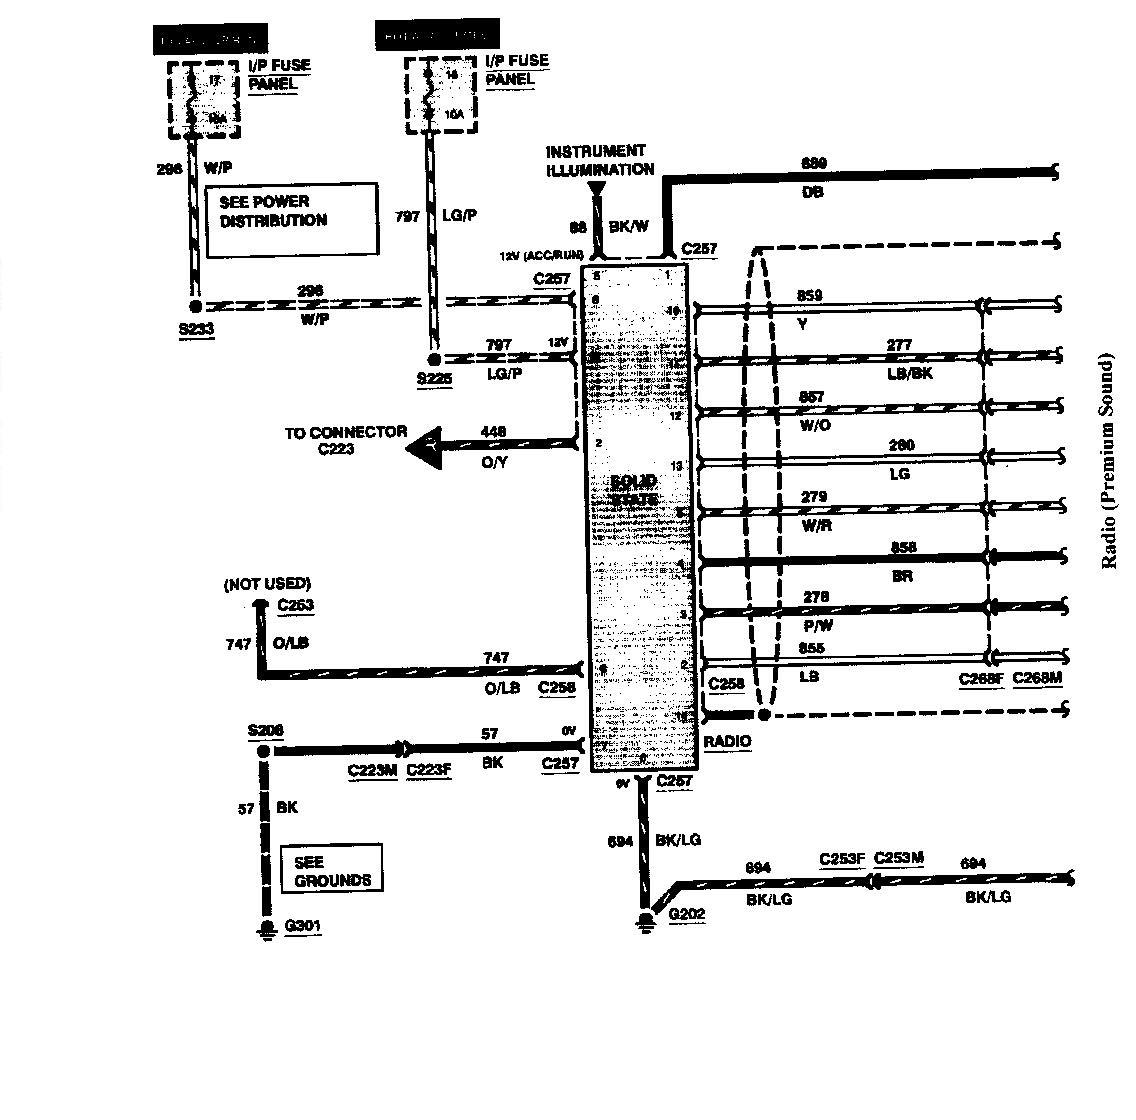 95Mark8 Premium Sound Wiring 95 mark 8 jbl wiring diagram needed lincolns online message forum 1994 lincoln town car wiring diagram at edmiracle.co